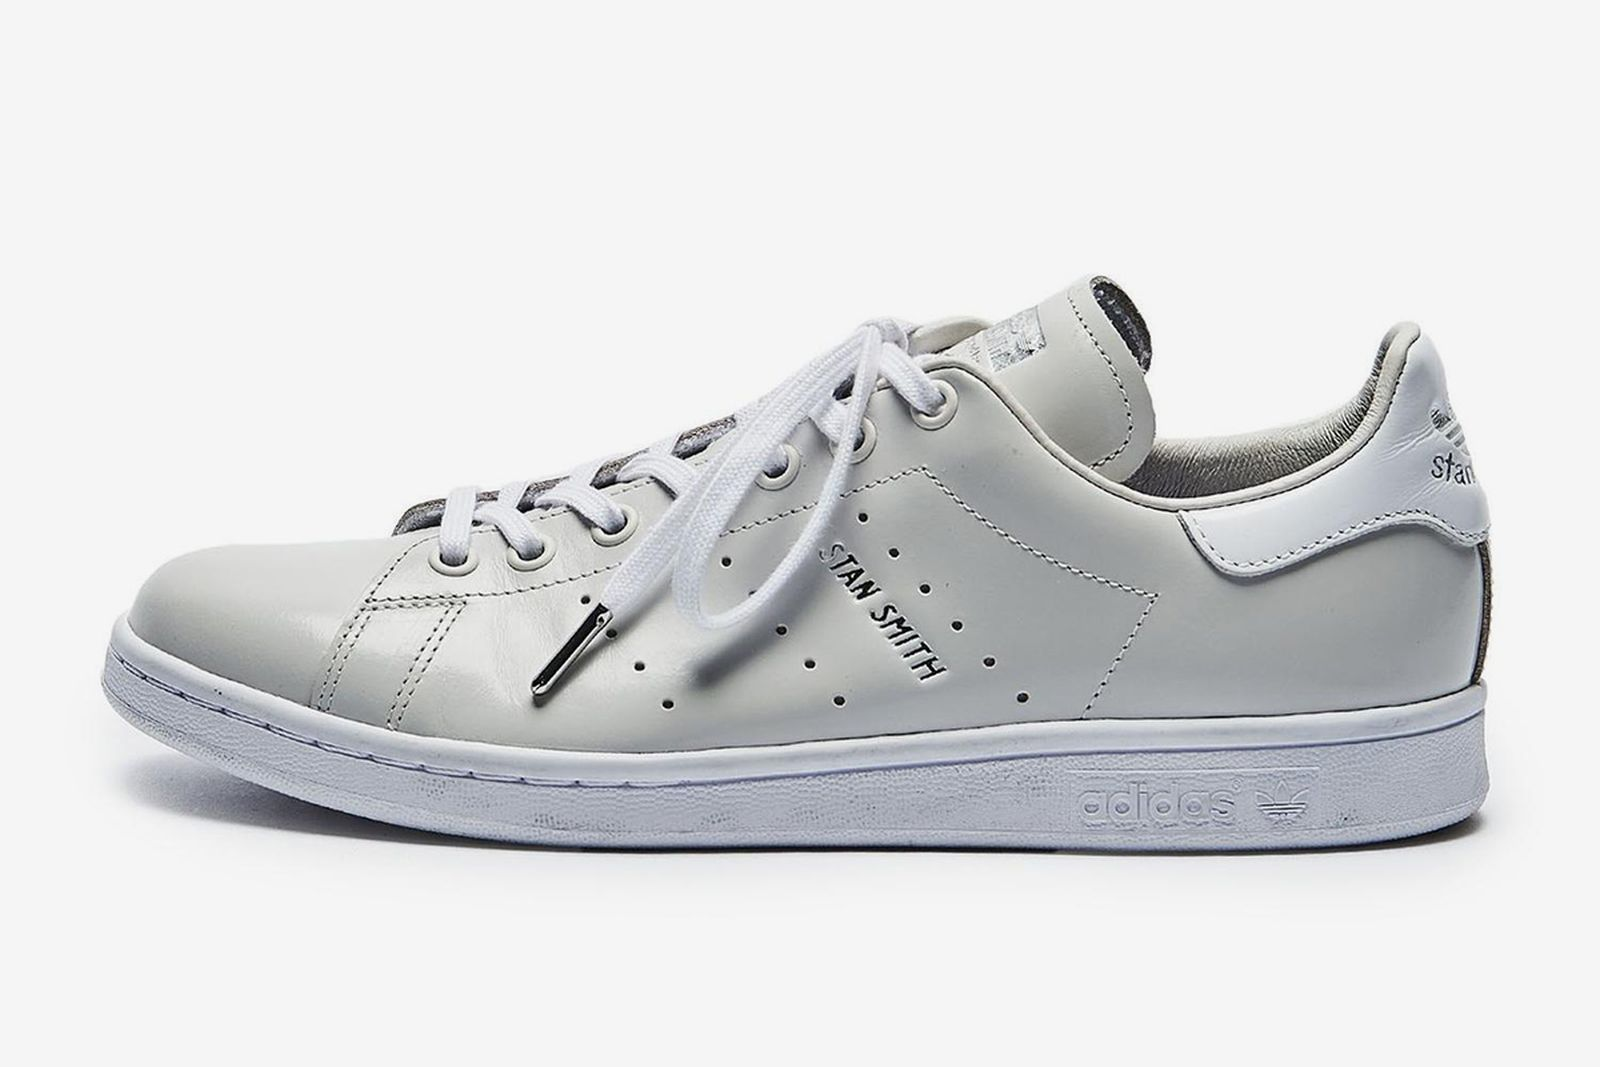 beauty-and-youth-adidas-stan-smith-release-date-price-12